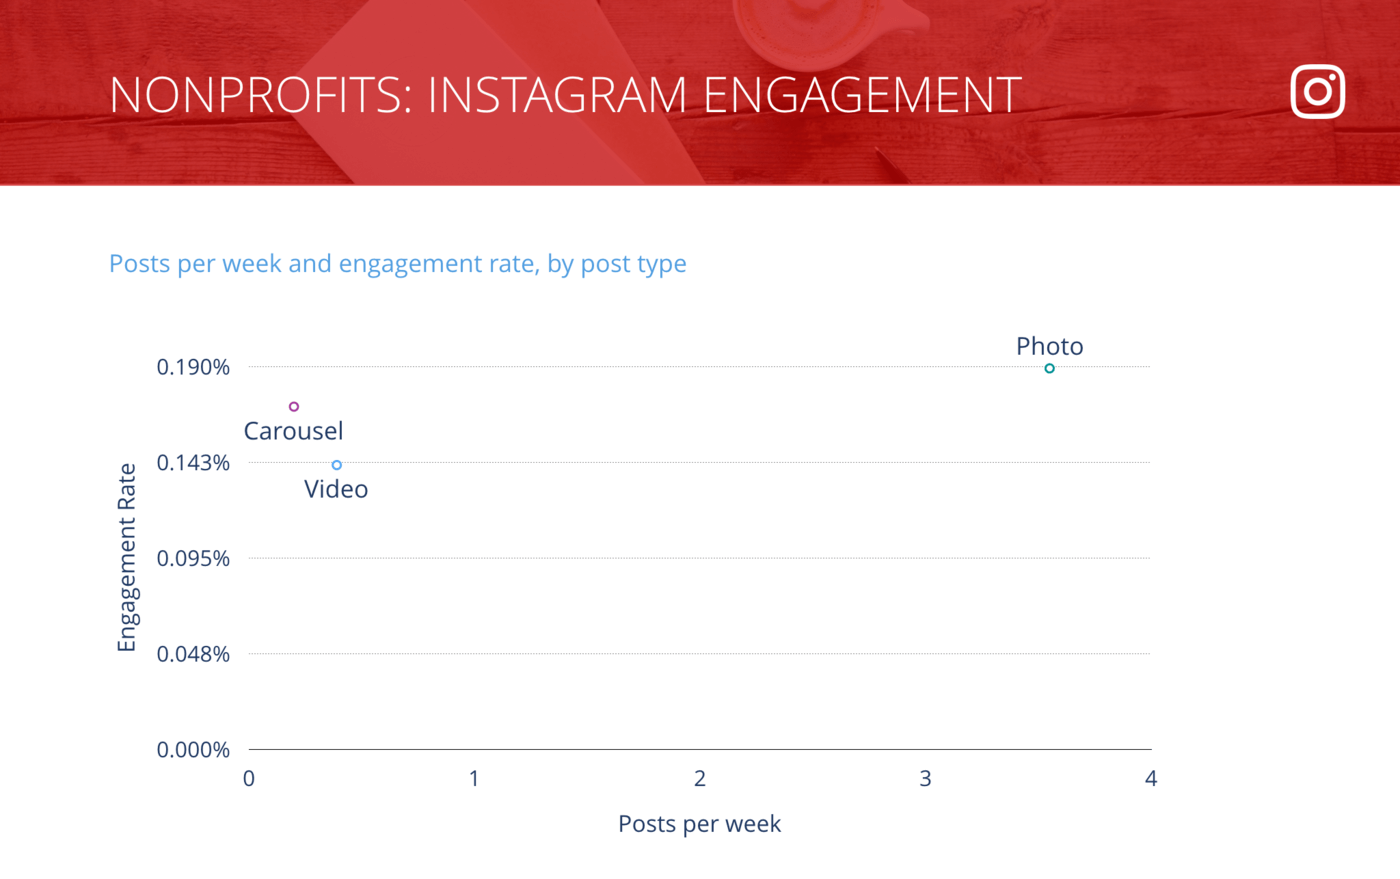 slide of Instagram Posts per Week vs. Engagement Rate per Post, Nonprofit Organizations